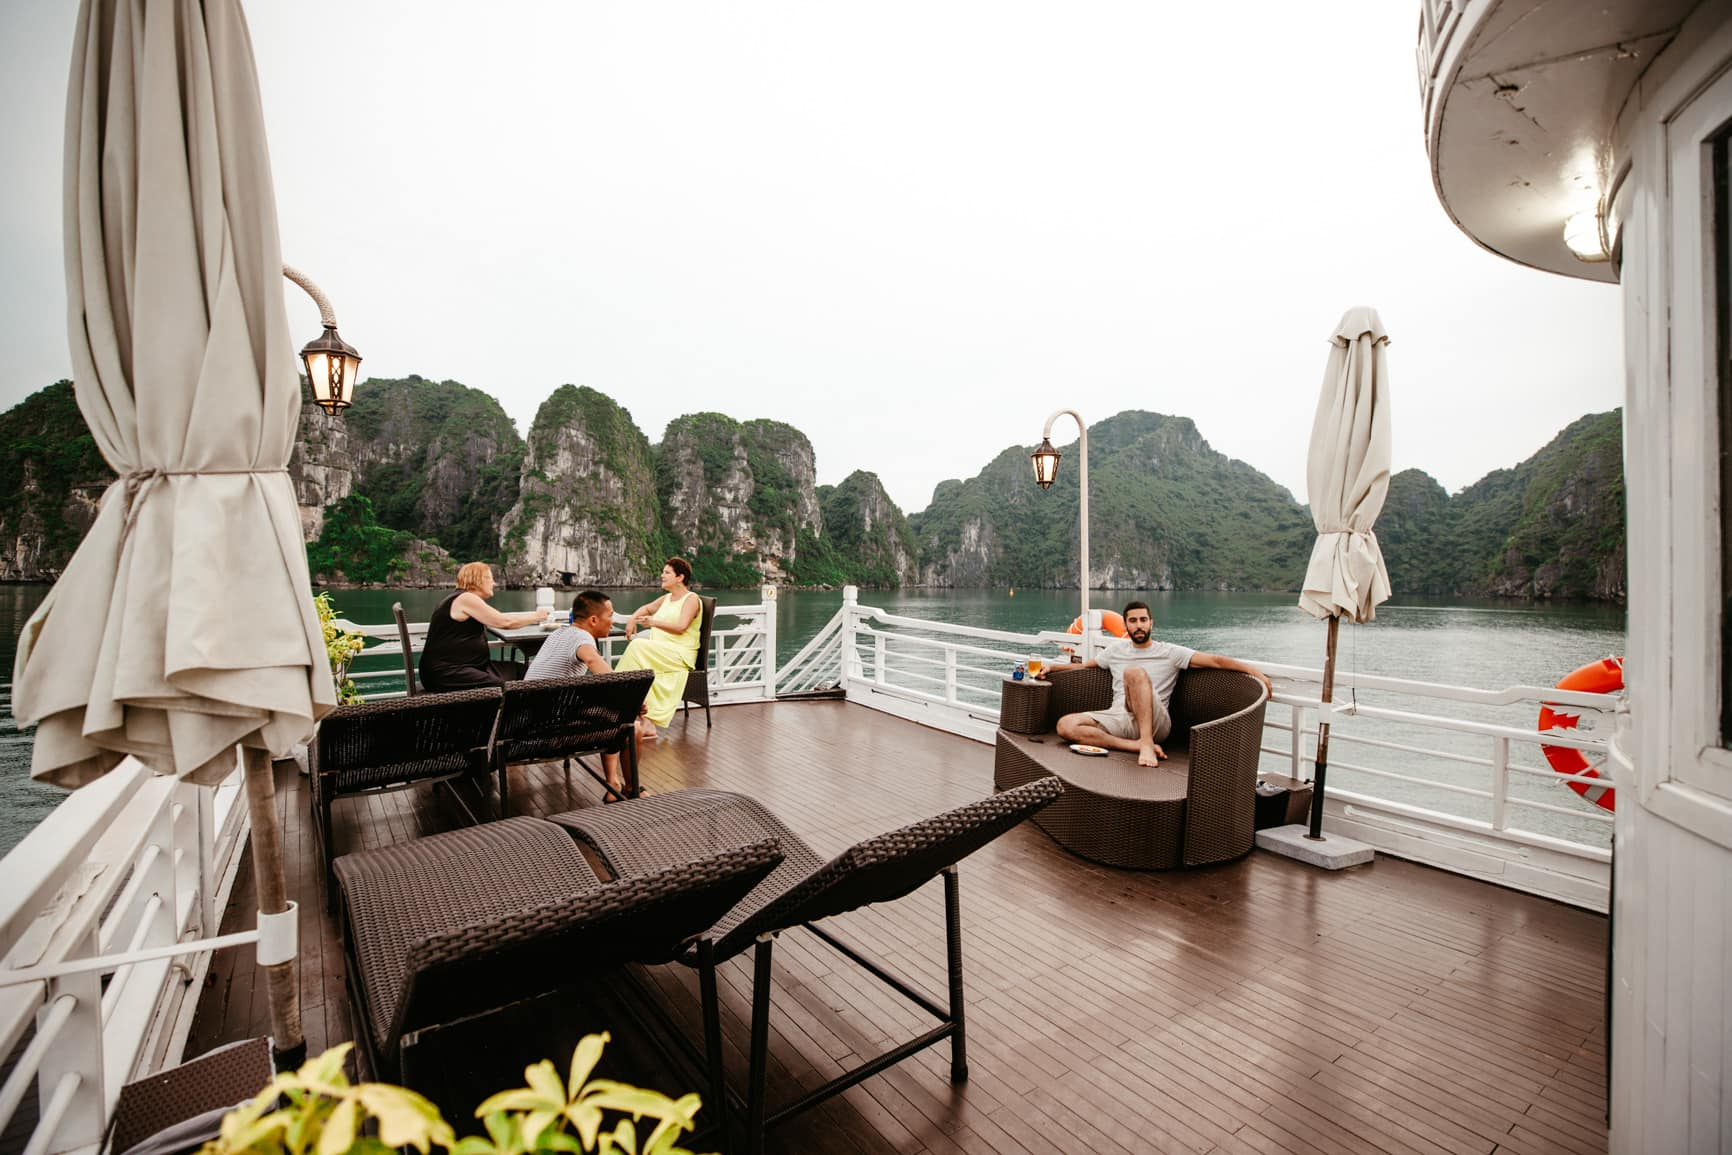 Halong Bay is one of the top places to visit in Vietnam